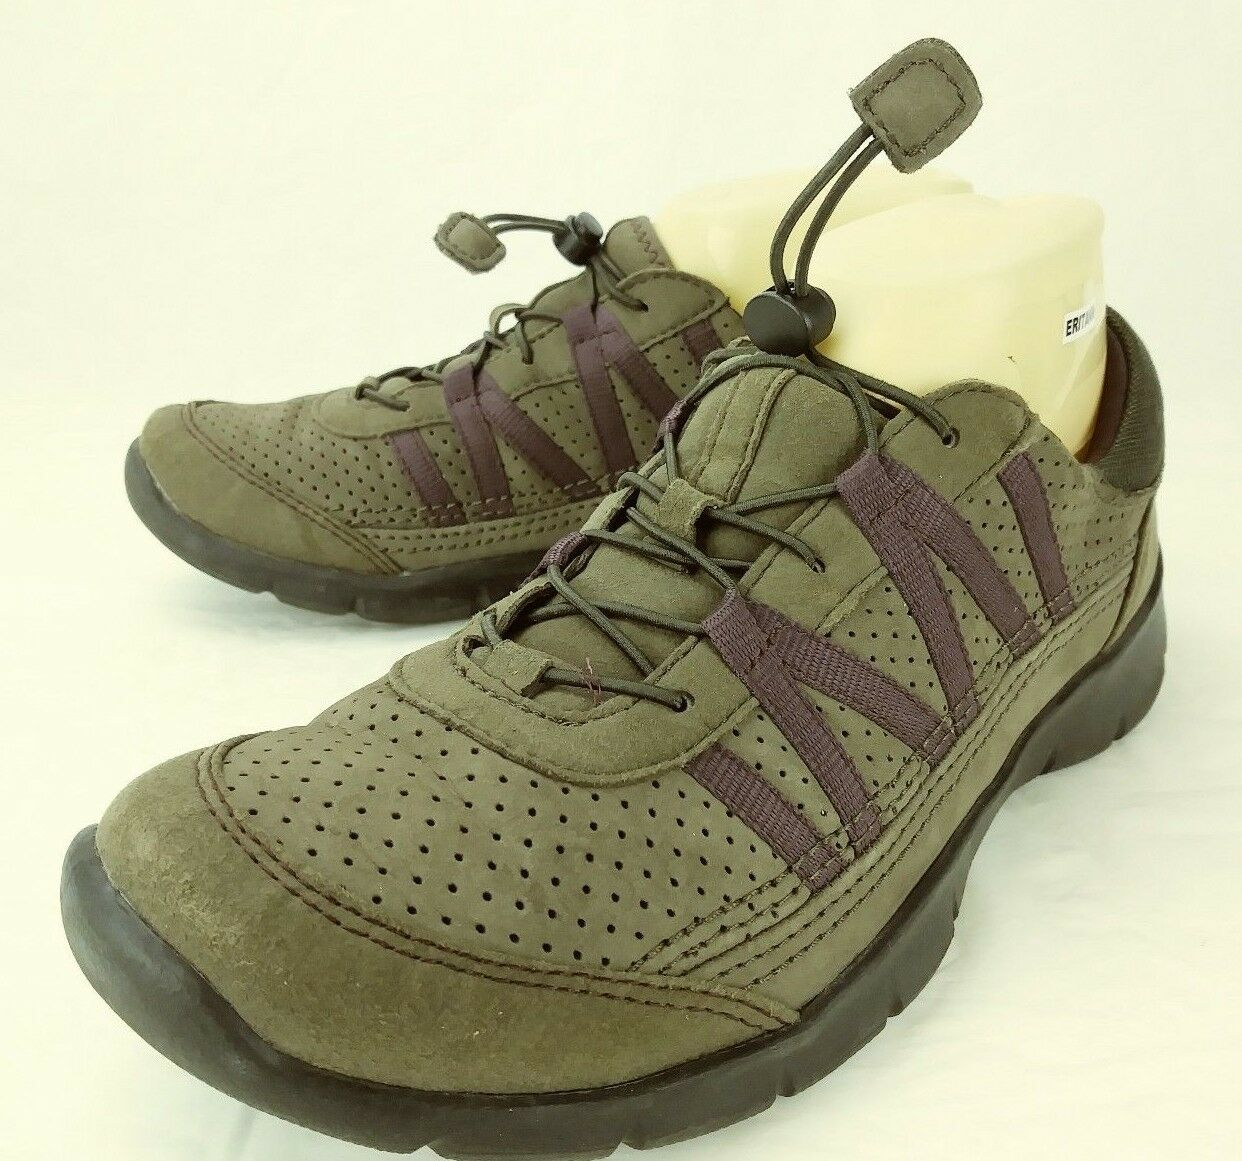 Clarks Wos shoes Sneakers US 9 M Brown Leather Purple Elastic Walking 5246